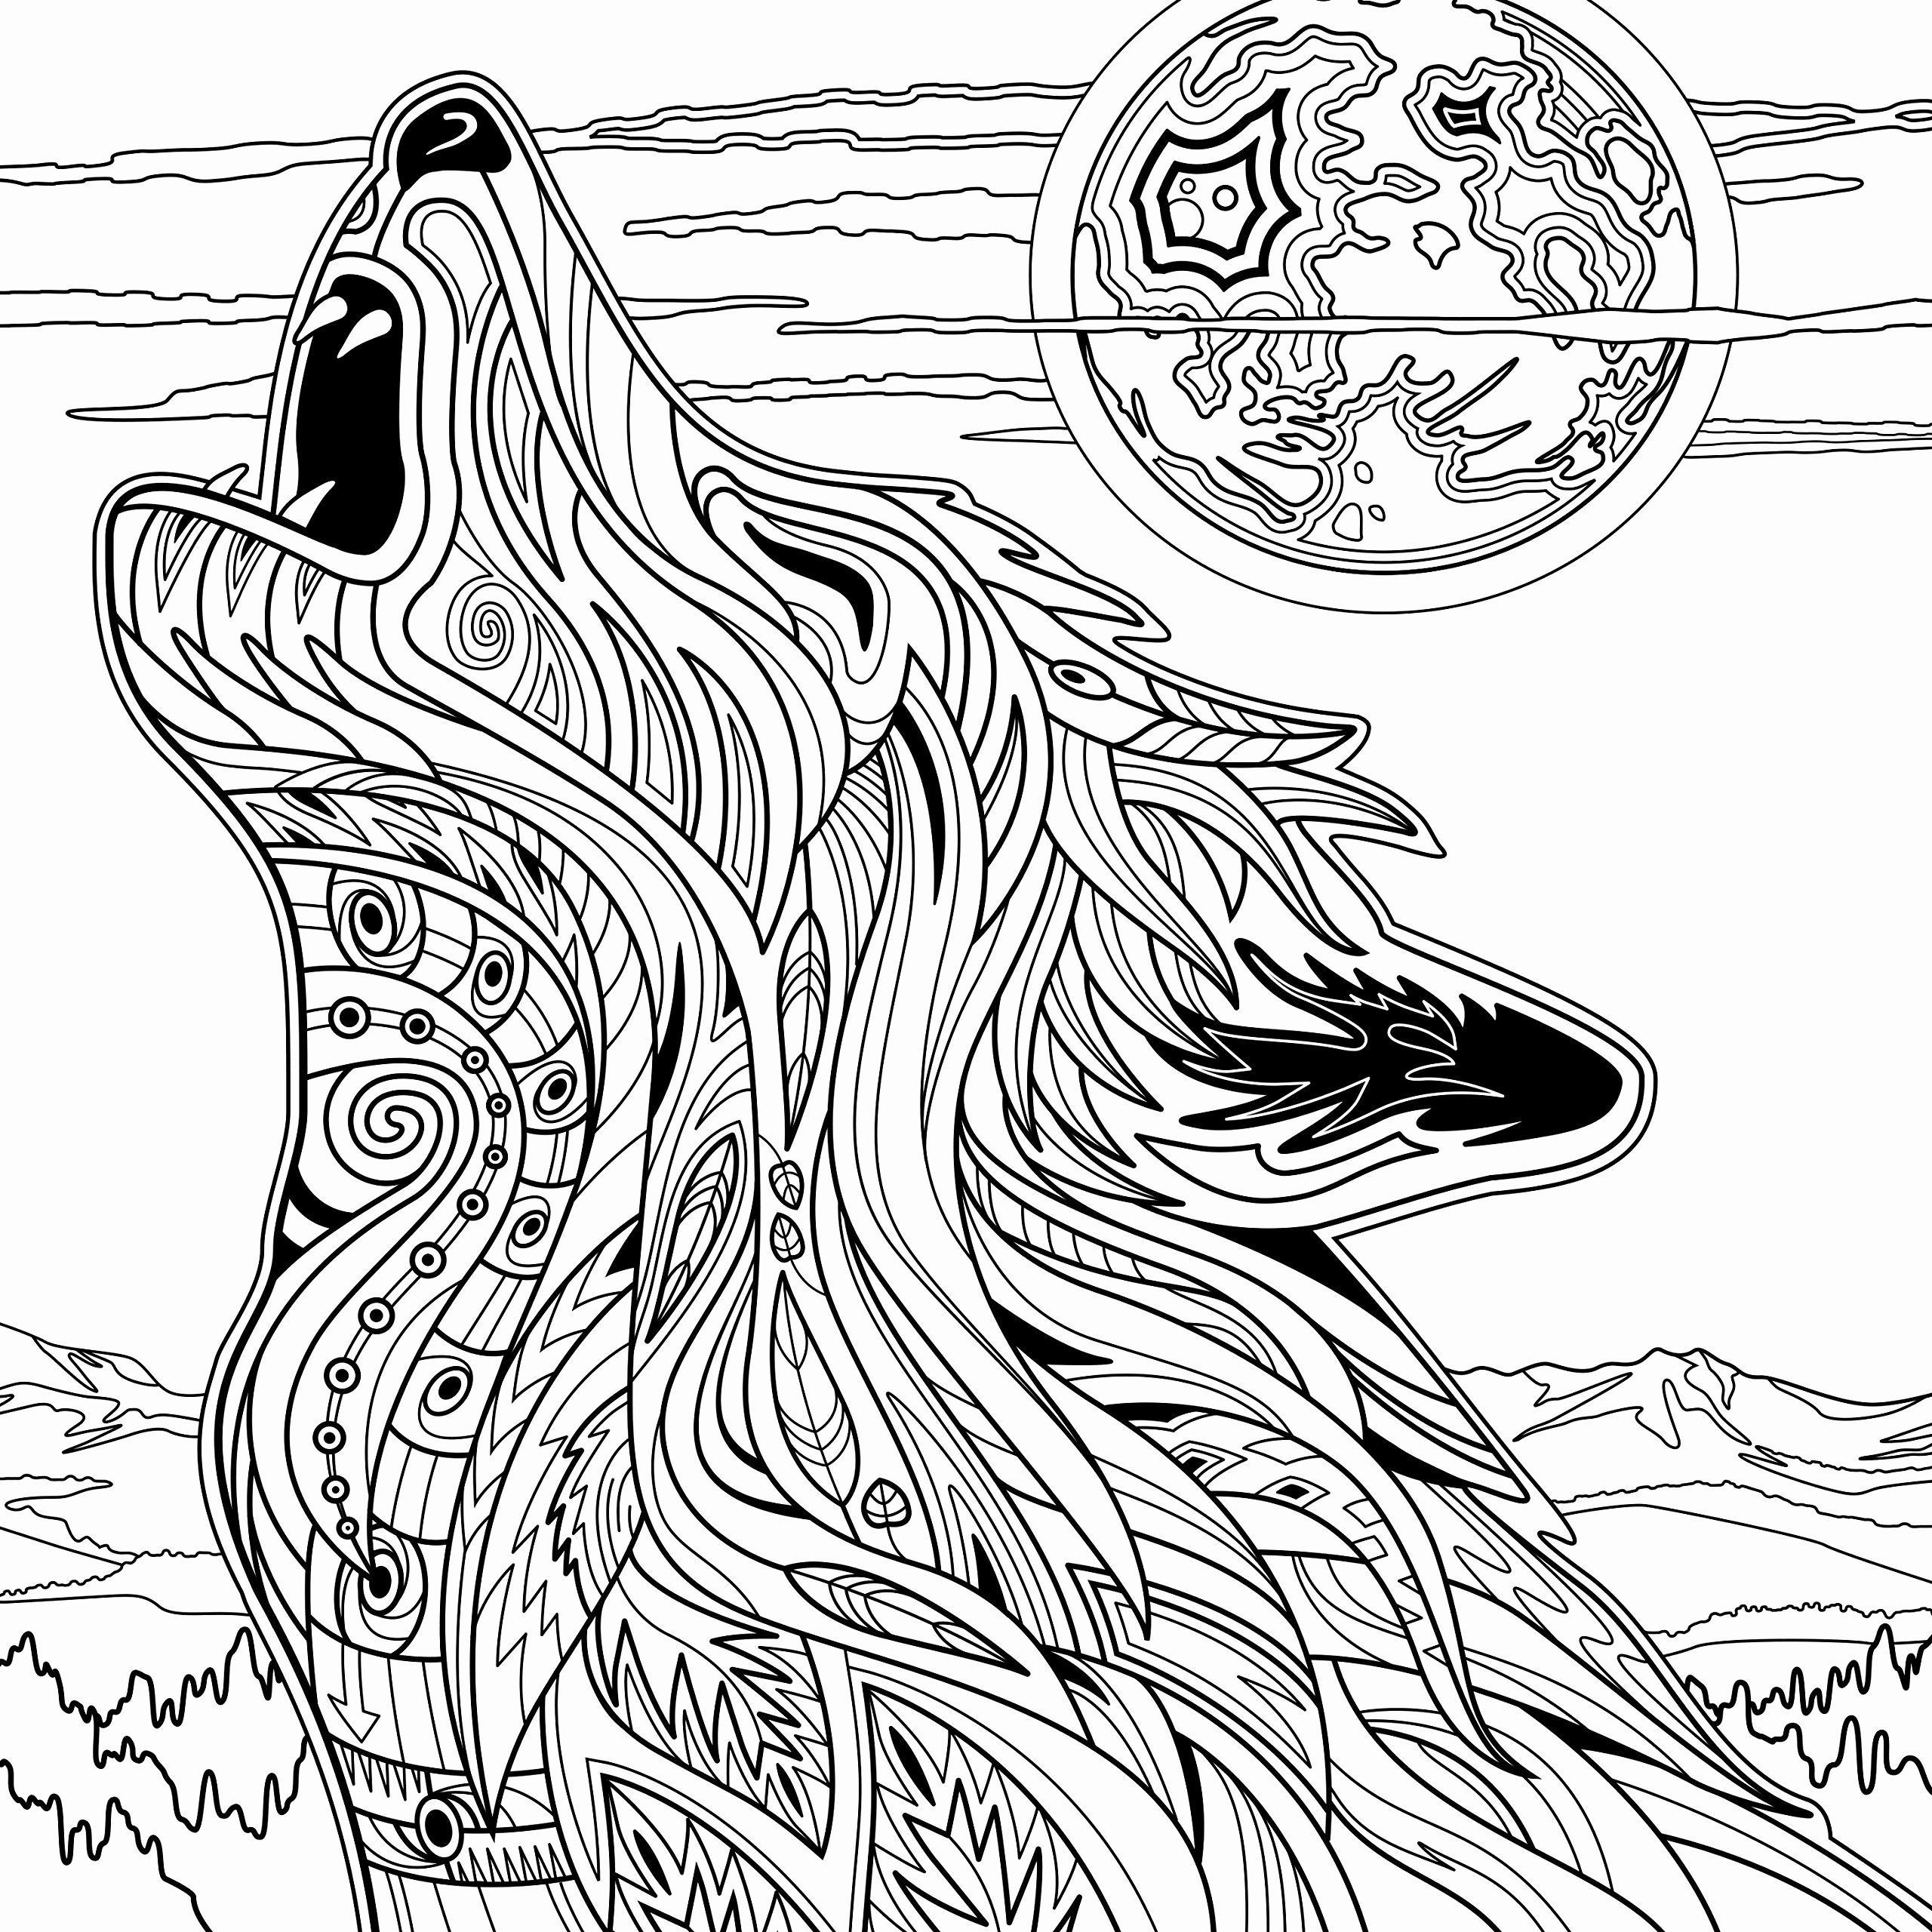 Pin By Ivana Kustura On Sophia In 2021 Mandala Coloring Pages Animal Coloring Pages Wolf Colors